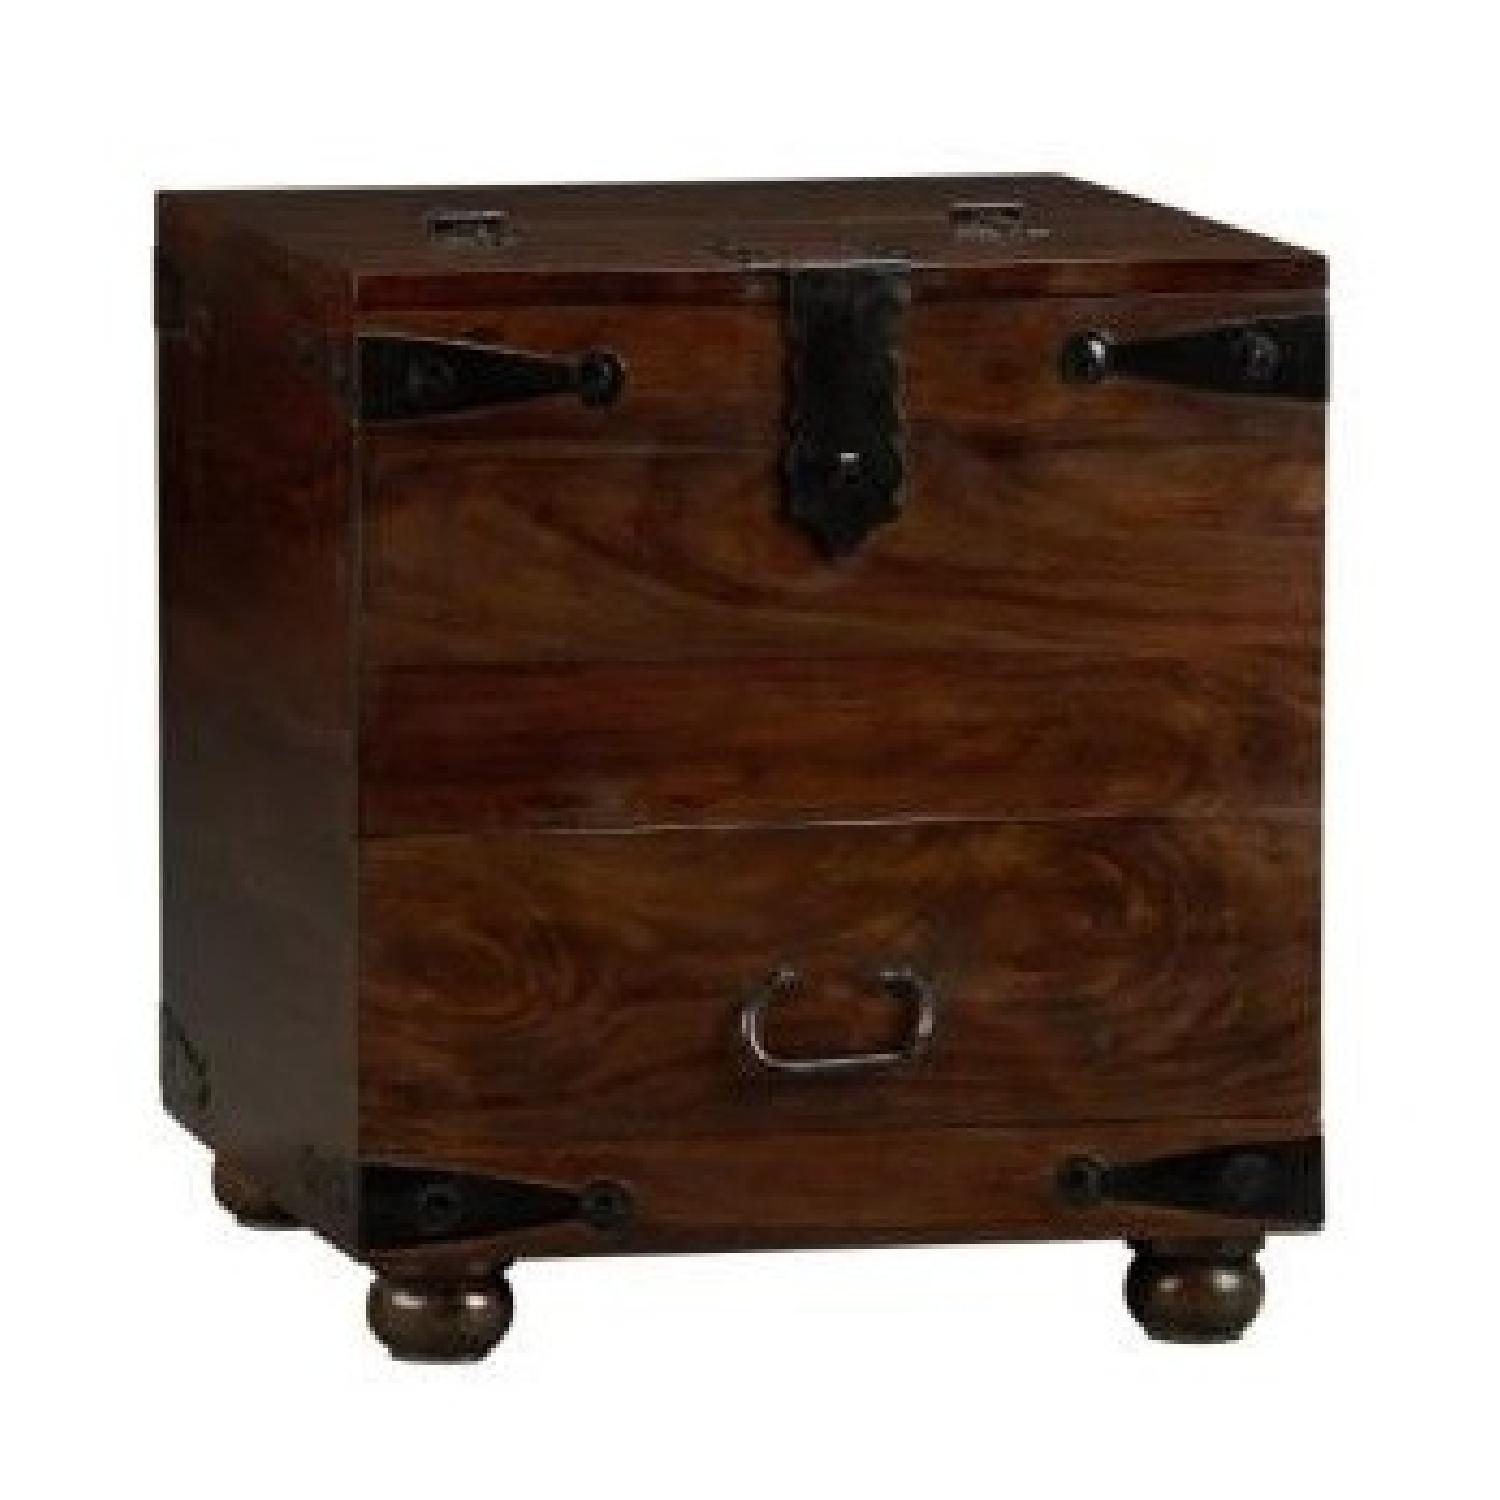 Crate & Barrel Taka Storage Chest Coffee Table + Side Table